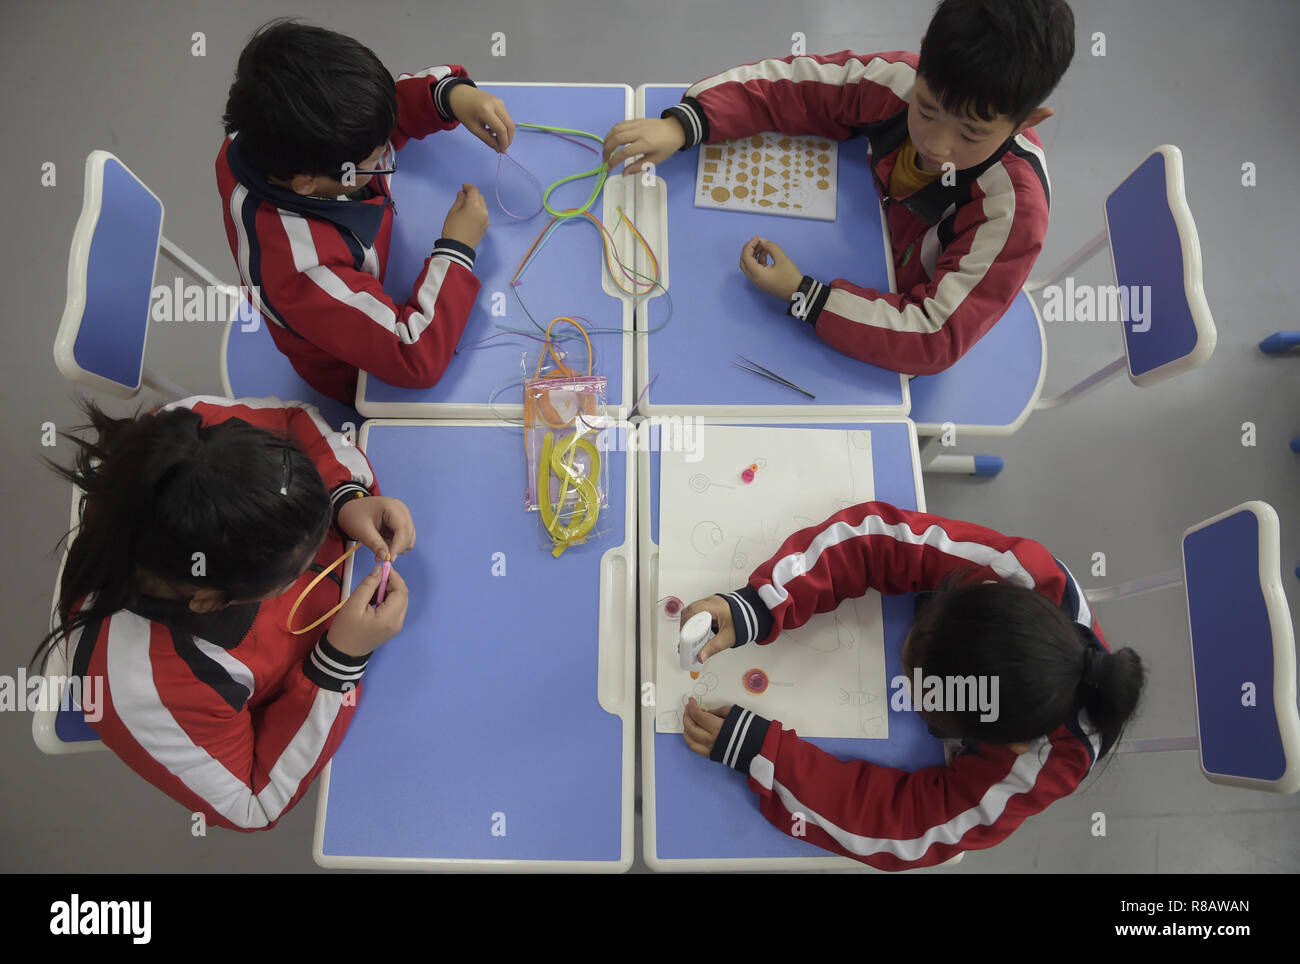 Gu'an, China's Hebei Province. 14th Dec, 2018. Students learn to make pictures by gluing colored materials at Nanzhaogezhuang primary school in Gu'an County, north China's Hebei Province, Dec. 14, 2018. Various extracurricular classes are provided in Nanzhaogezhuang primary school to enrich the school life of students. Credit: Lu Peng/Xinhua/Alamy Live News - Stock Image